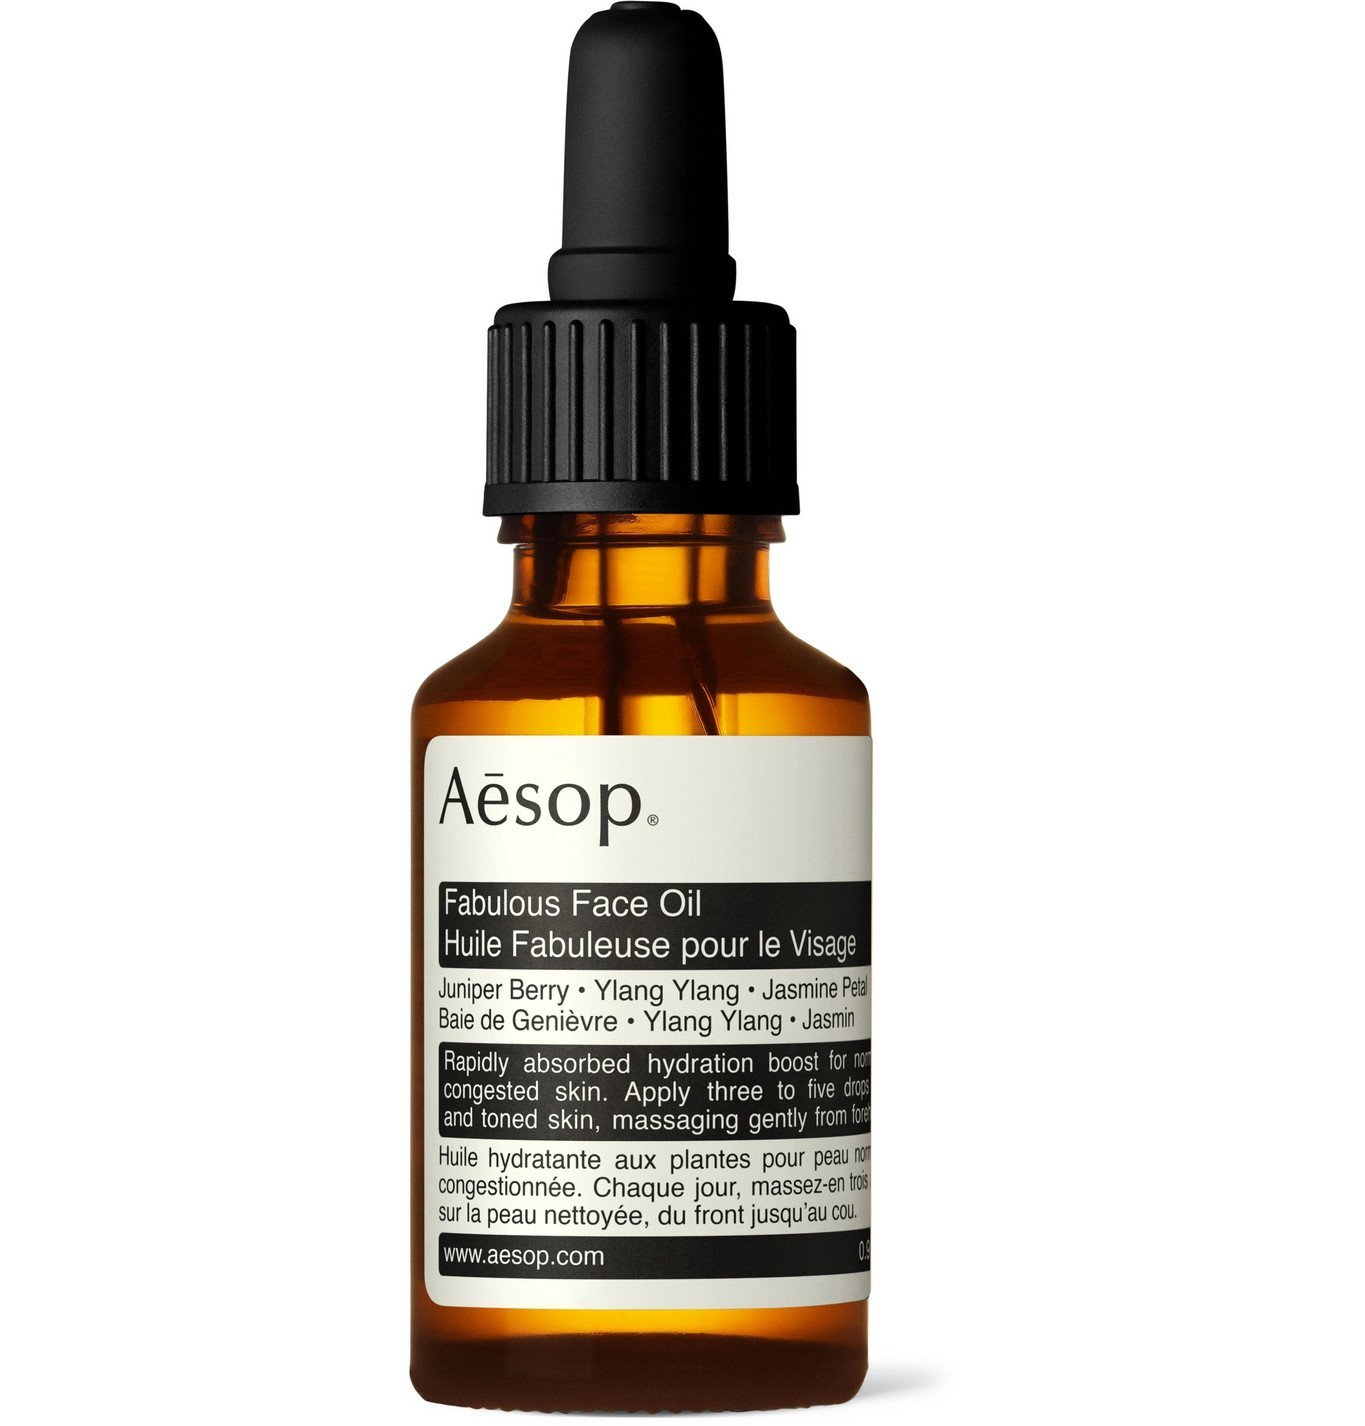 Photo: Aesop - Fabulous Face Oil, 25ml - Colorless